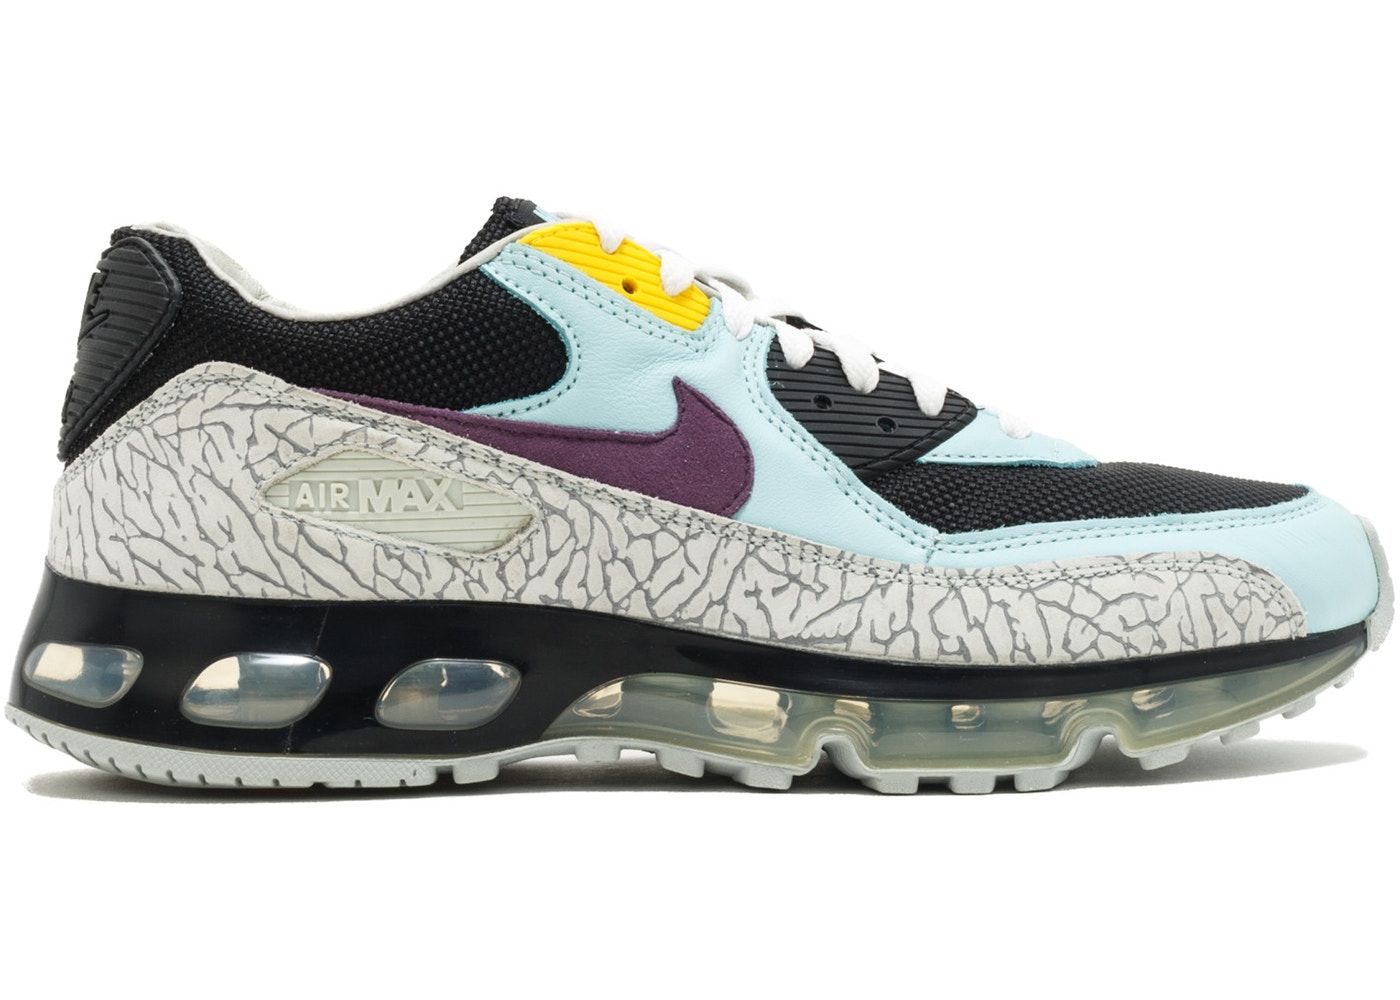 Nike Air Max 90 360 One Time Only Clerks